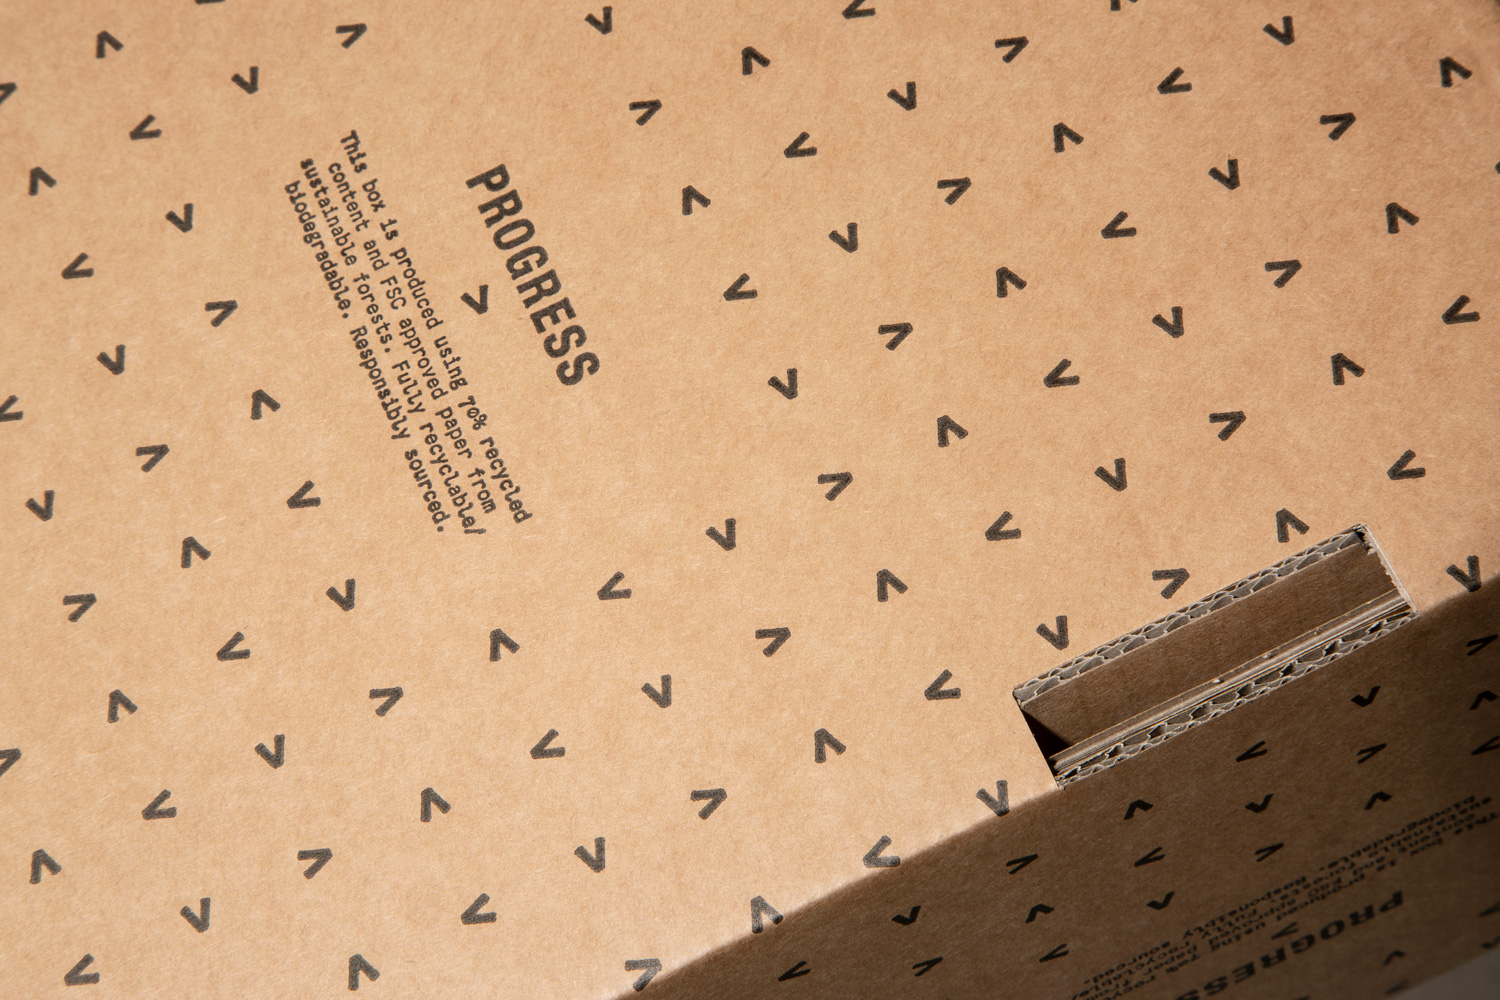 Progress Packaging Corrugated Mailing Box Carton High Quality Shipping Branded Bespoke Printed Retail Luxury Recyclable Environmentally Friendly Eco Durable E Commerce Reusable Kraft 2